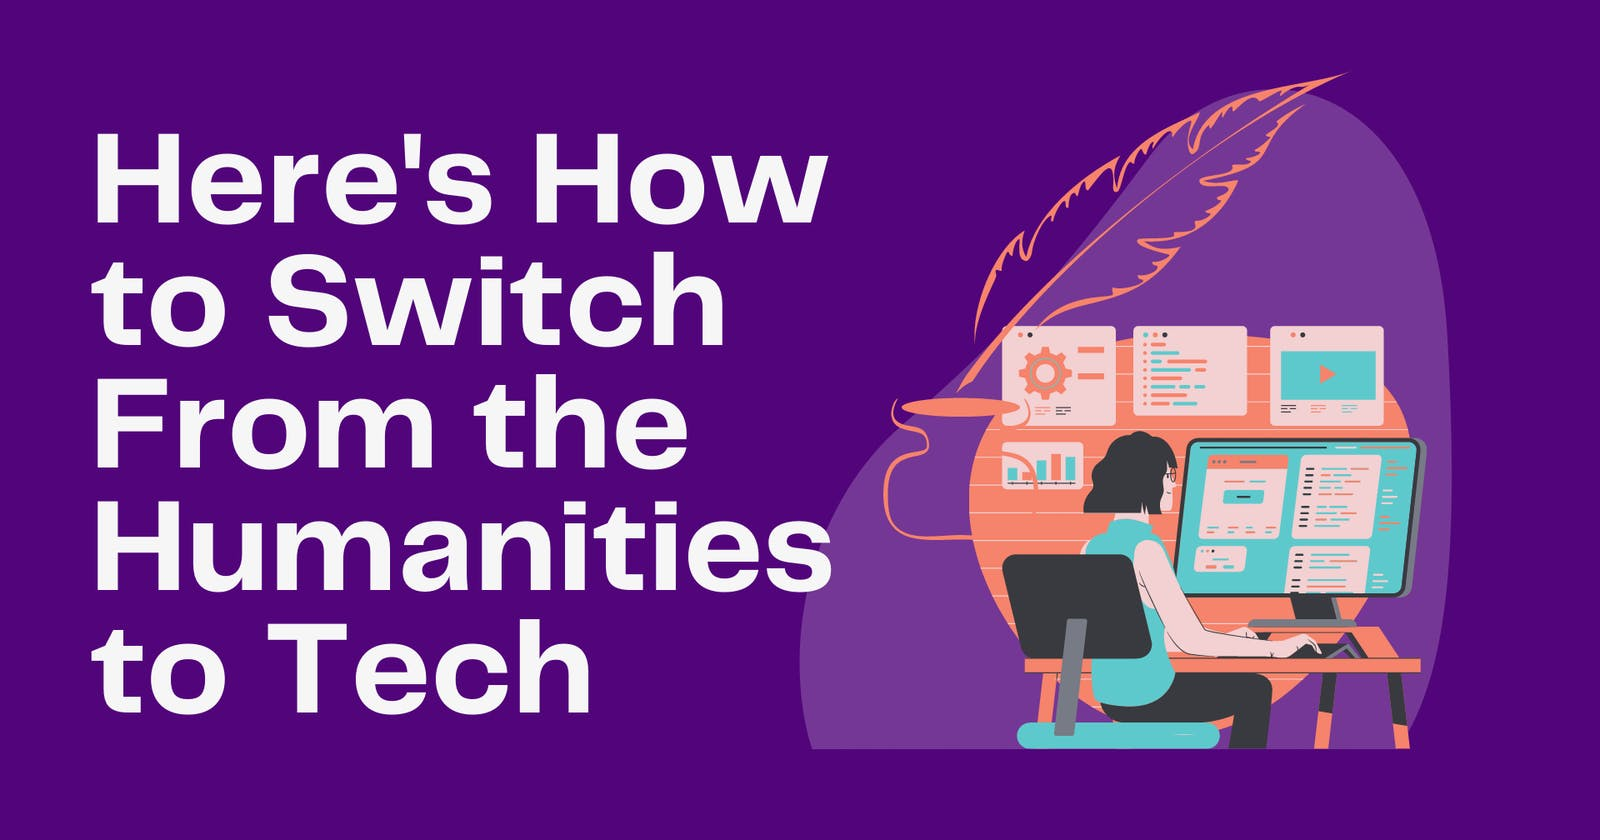 Here's How to Switch From the Humanities to Tech